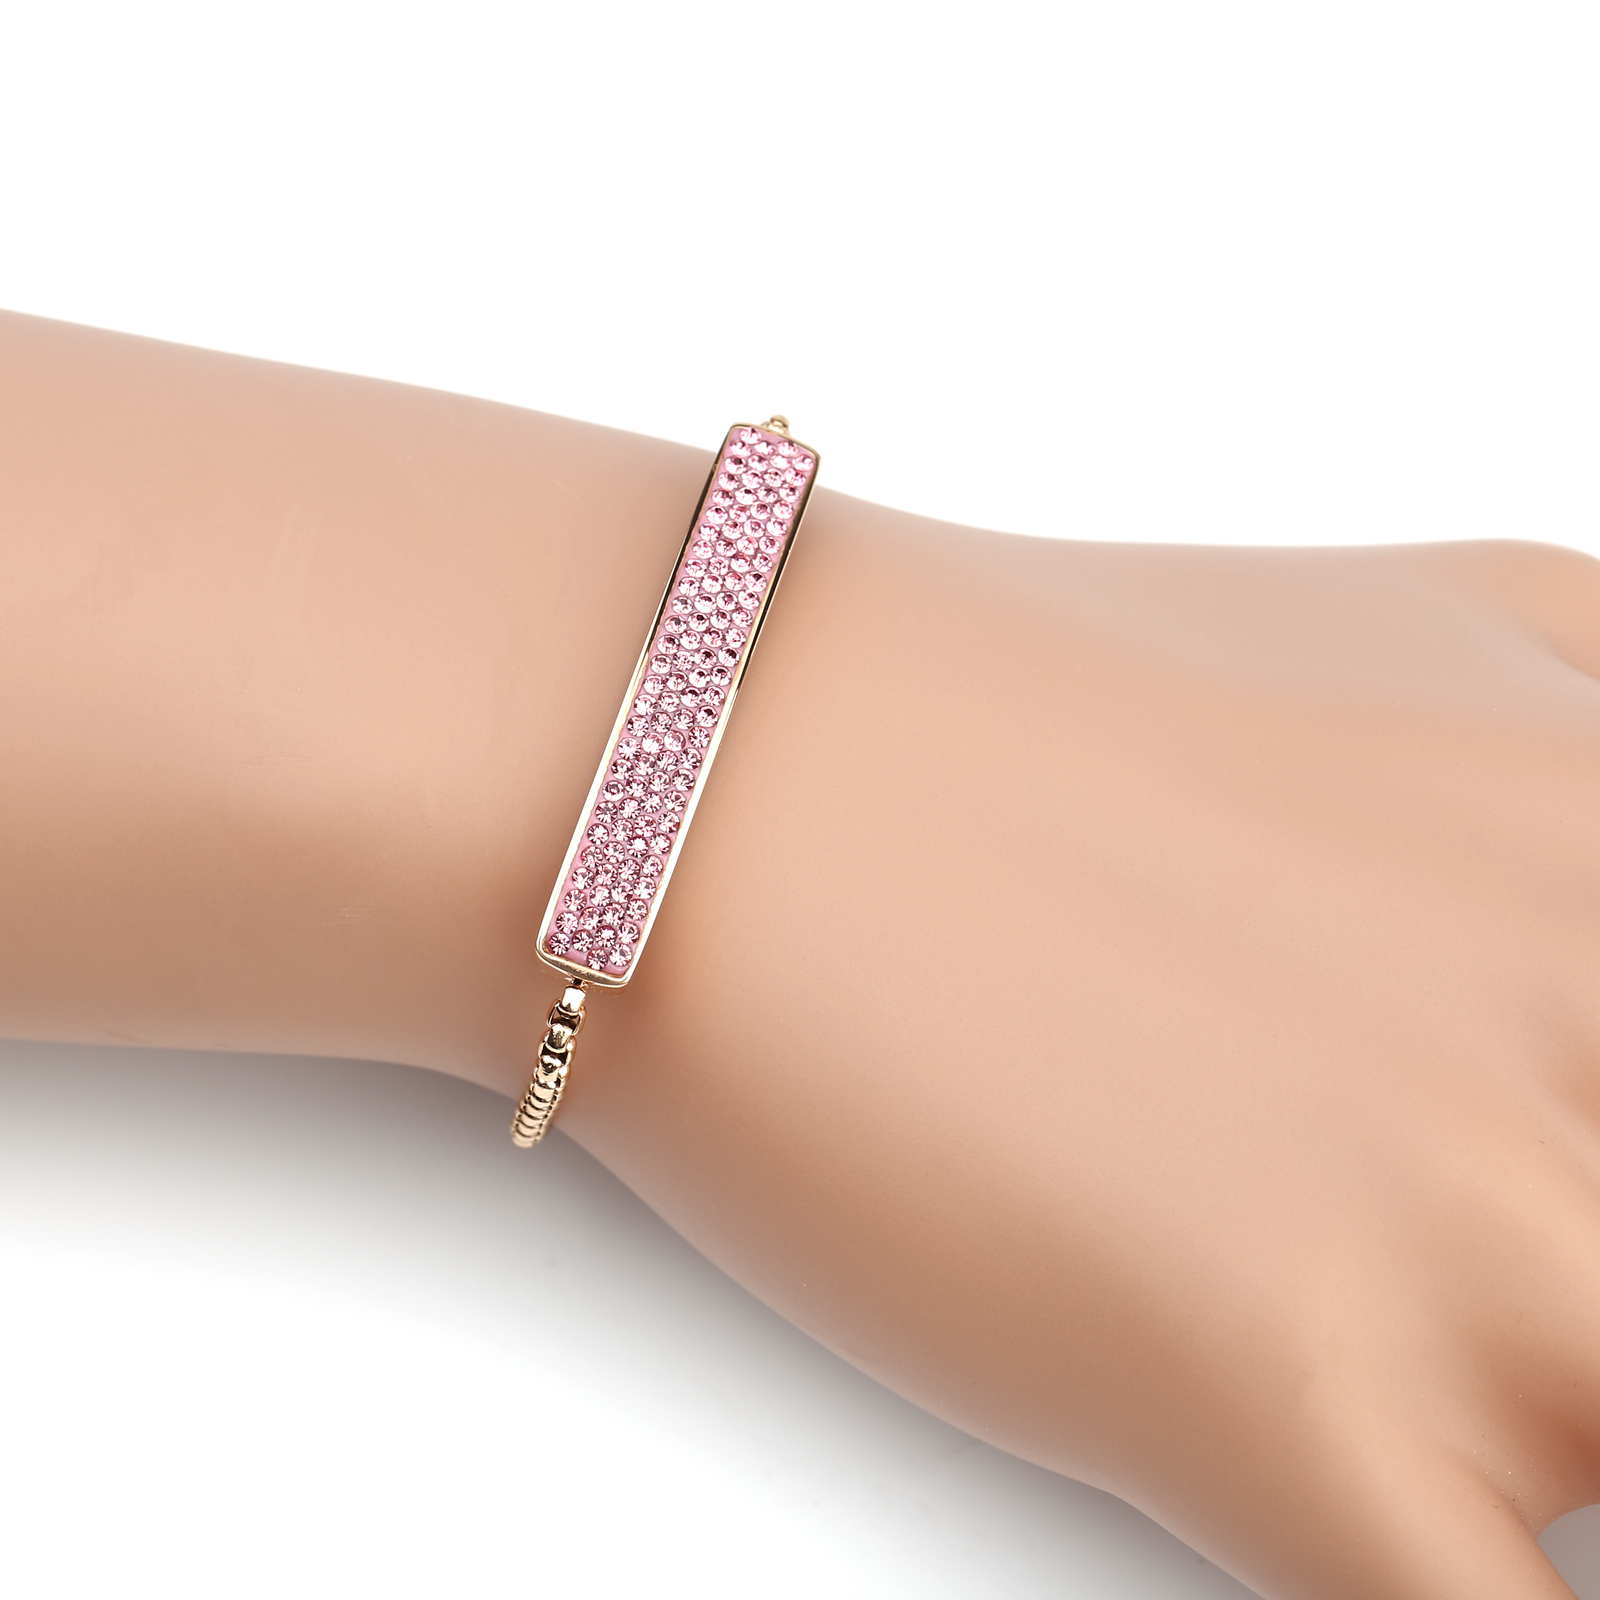 UNITED ELEGANCE Rose Tone Bolo Bar Bracelet With Pink Swarovski Style Crystals